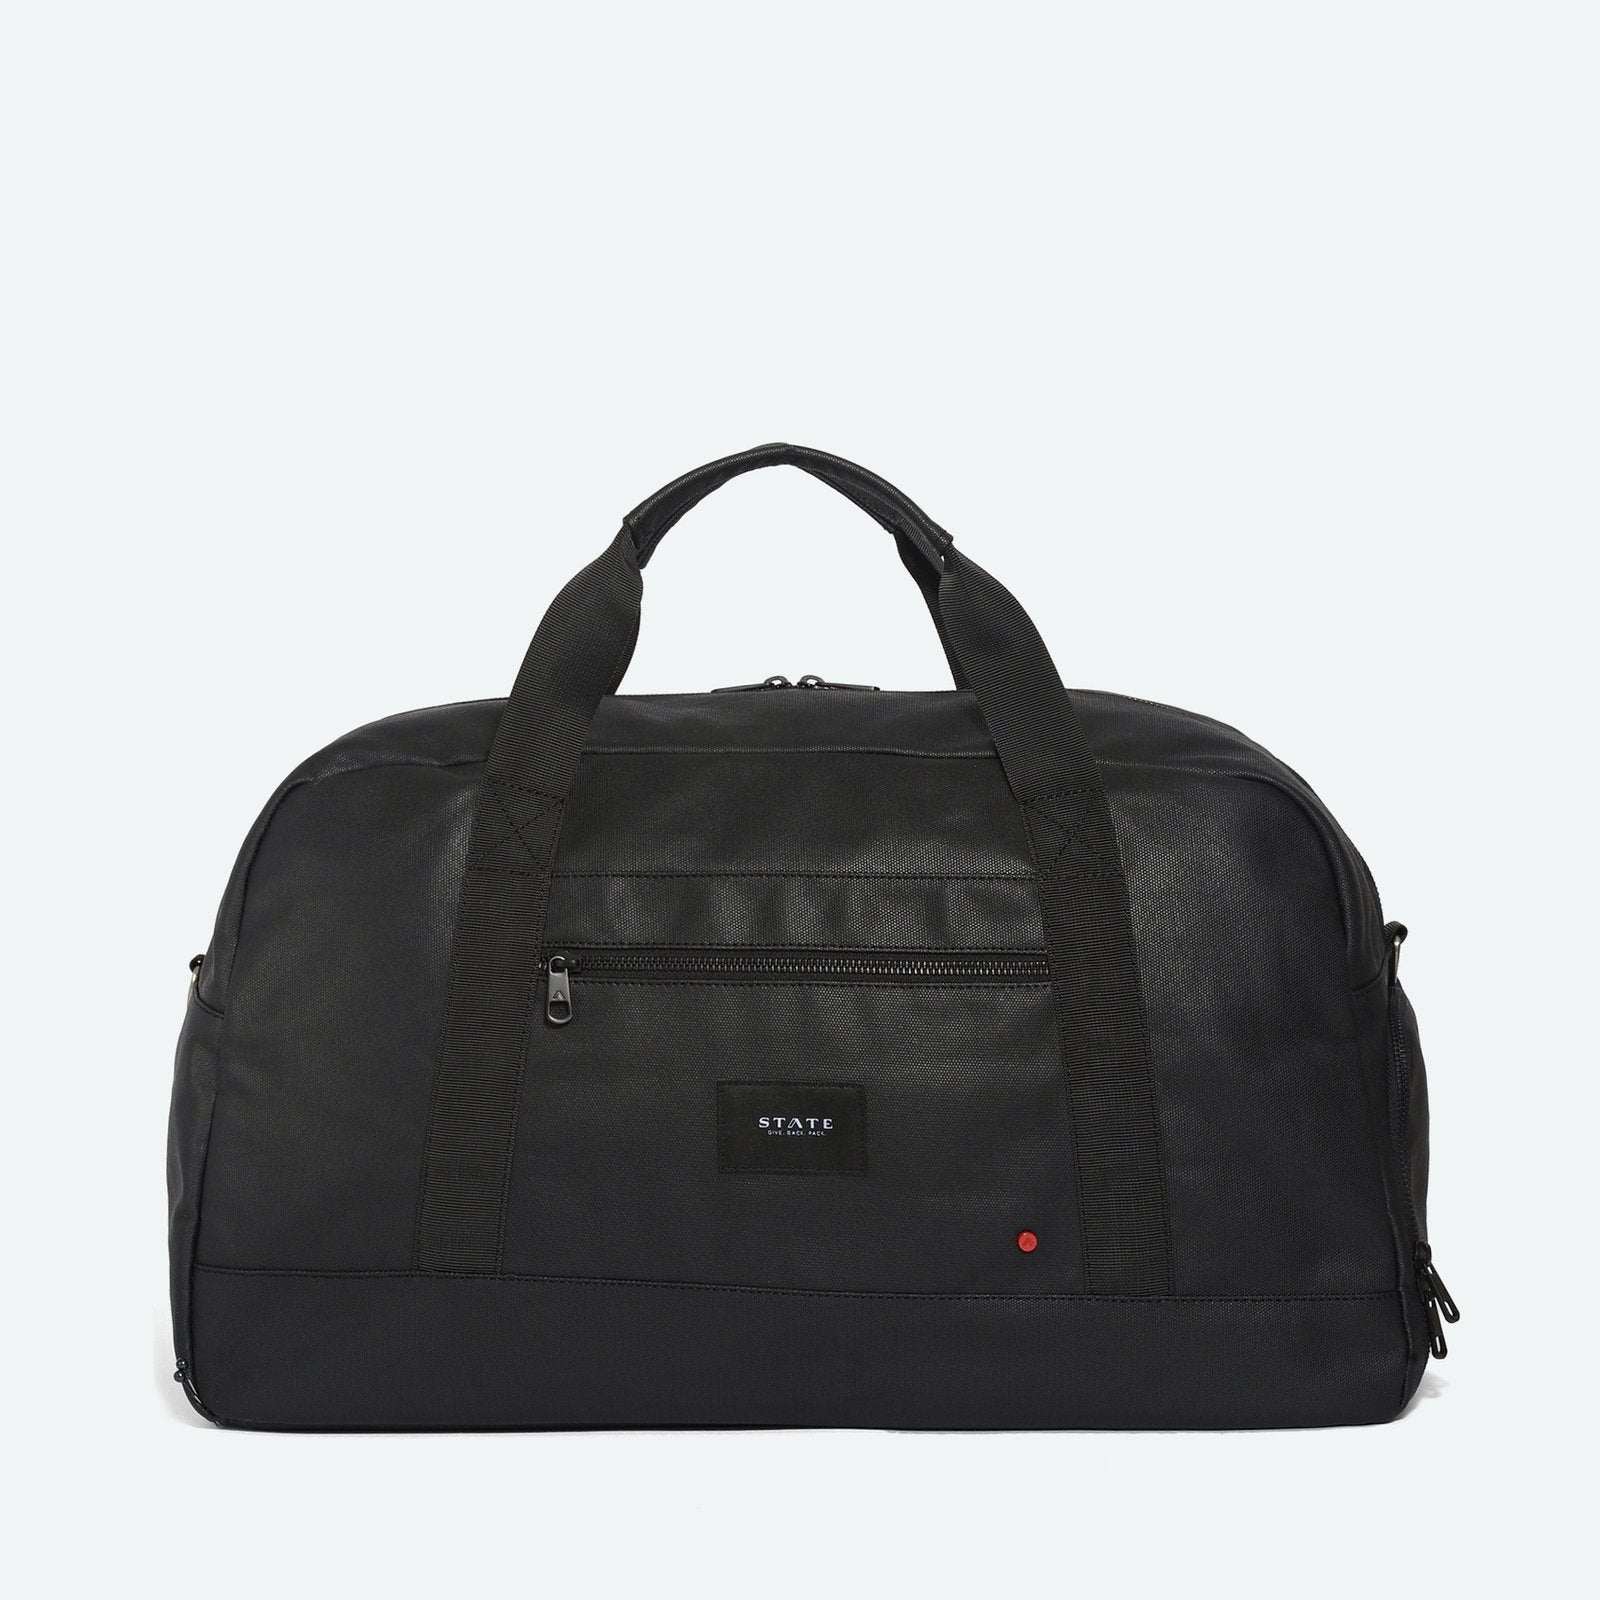 5fc569afc2ce STATE Bags - Backpacks, Totes and Bags for Women, Men & Kids